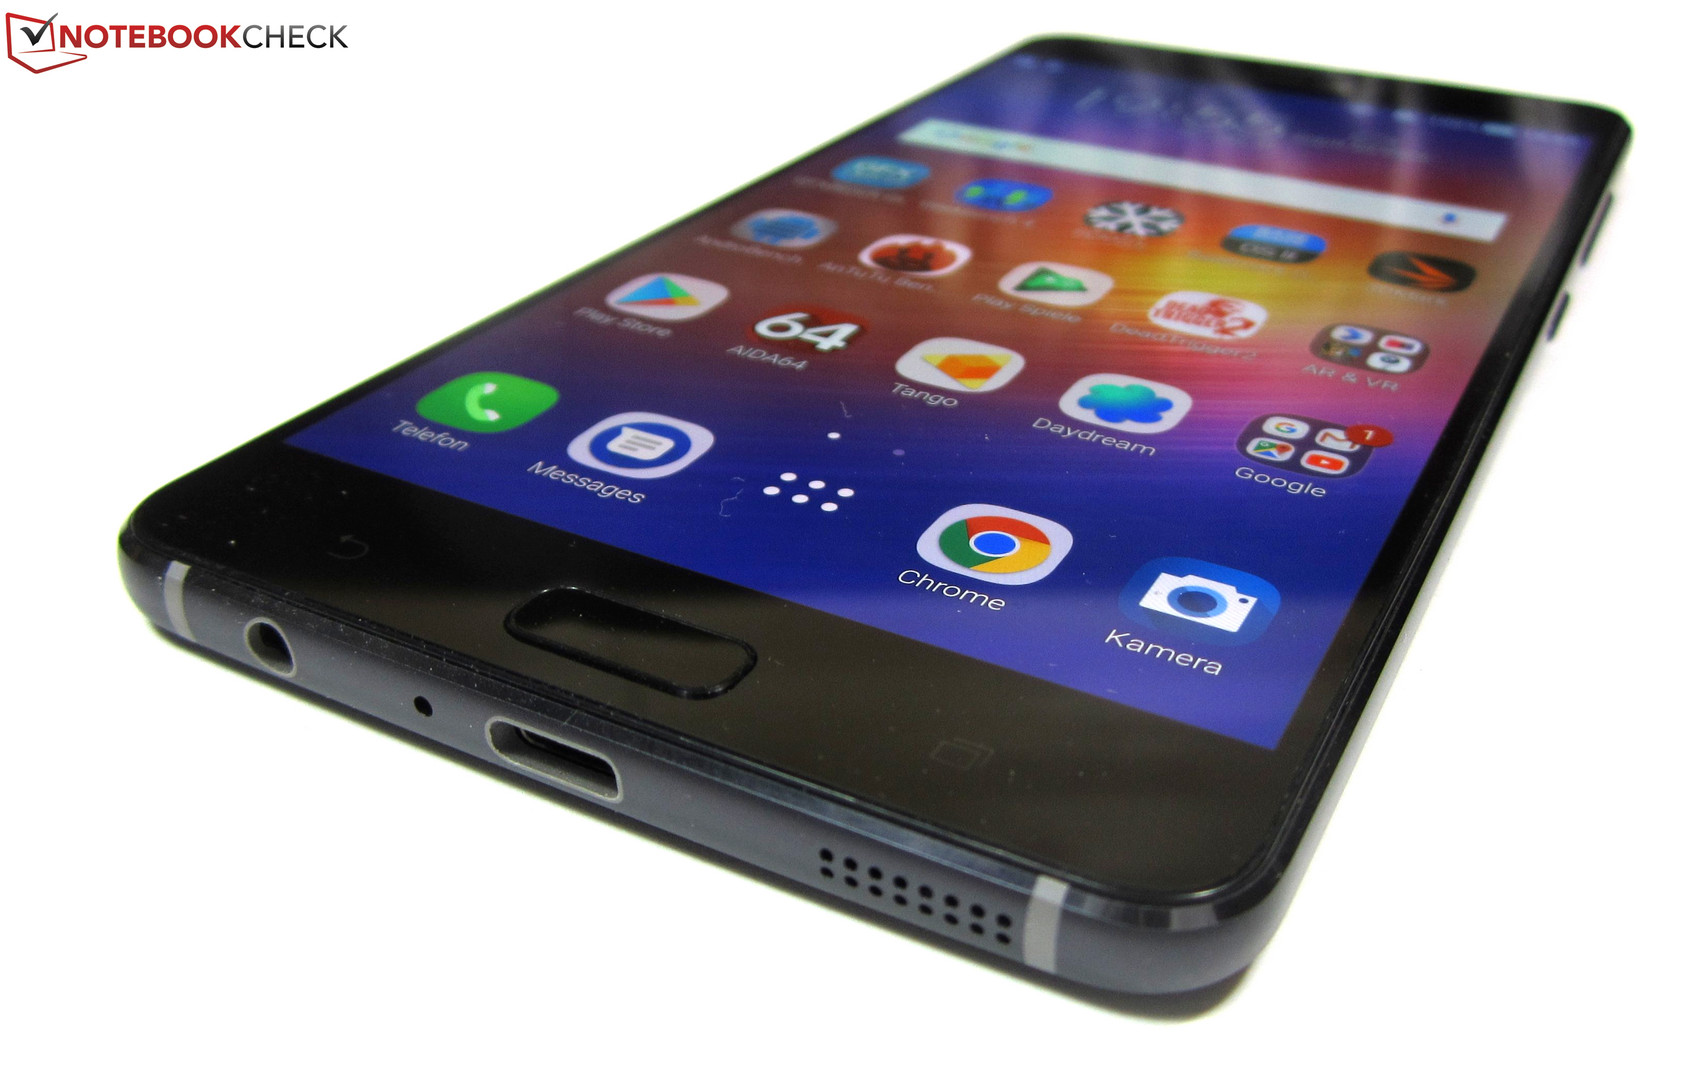 Asus zenfone 6 does not bend like apple iphone 6 plus - Asus Zenfone Ar Zs571kl